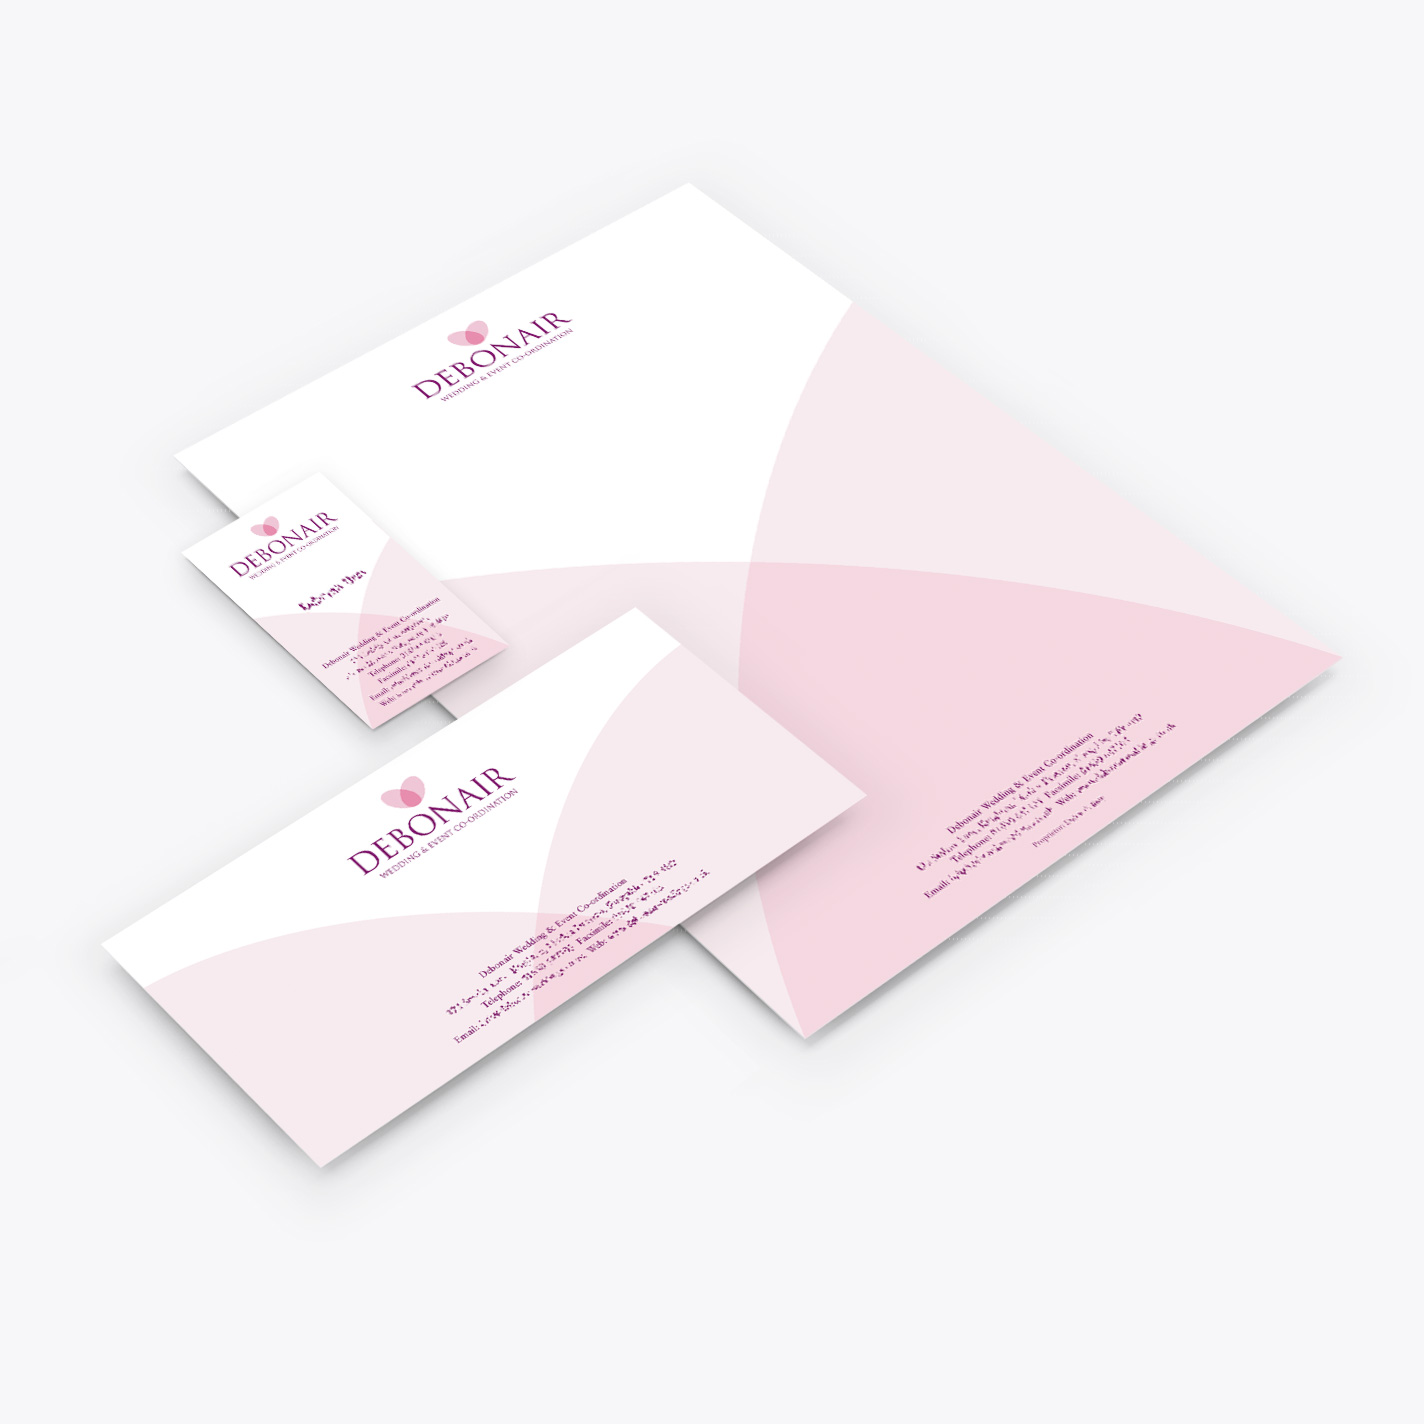 Debonair wedding stationery design